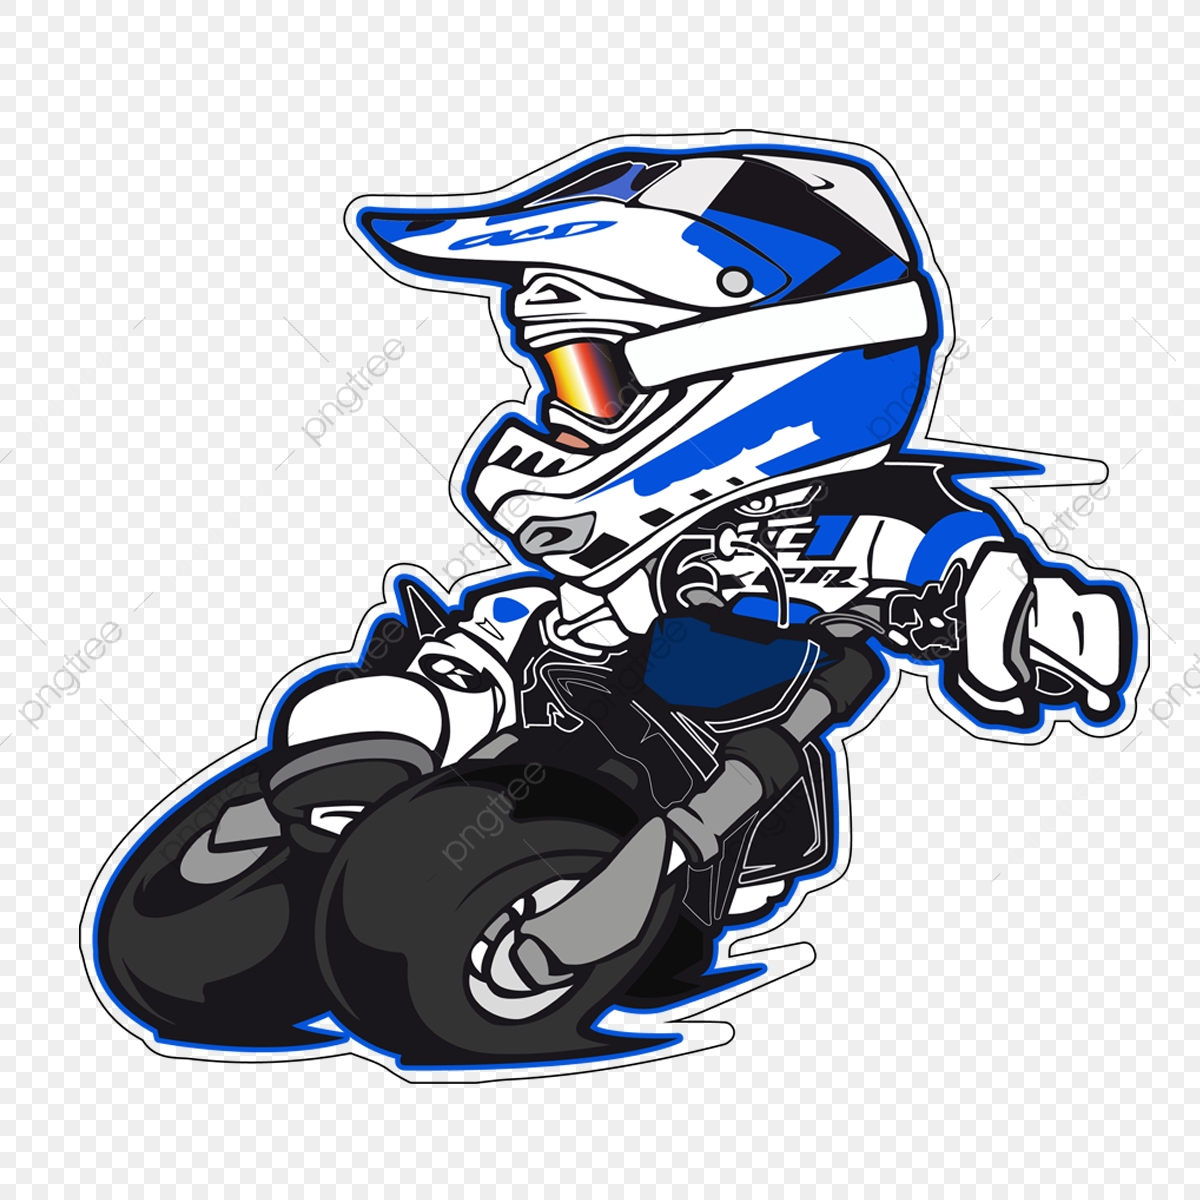 b510dcb3 Motocross, Png, Sports, Blue PNG and Vector with Transparent ...